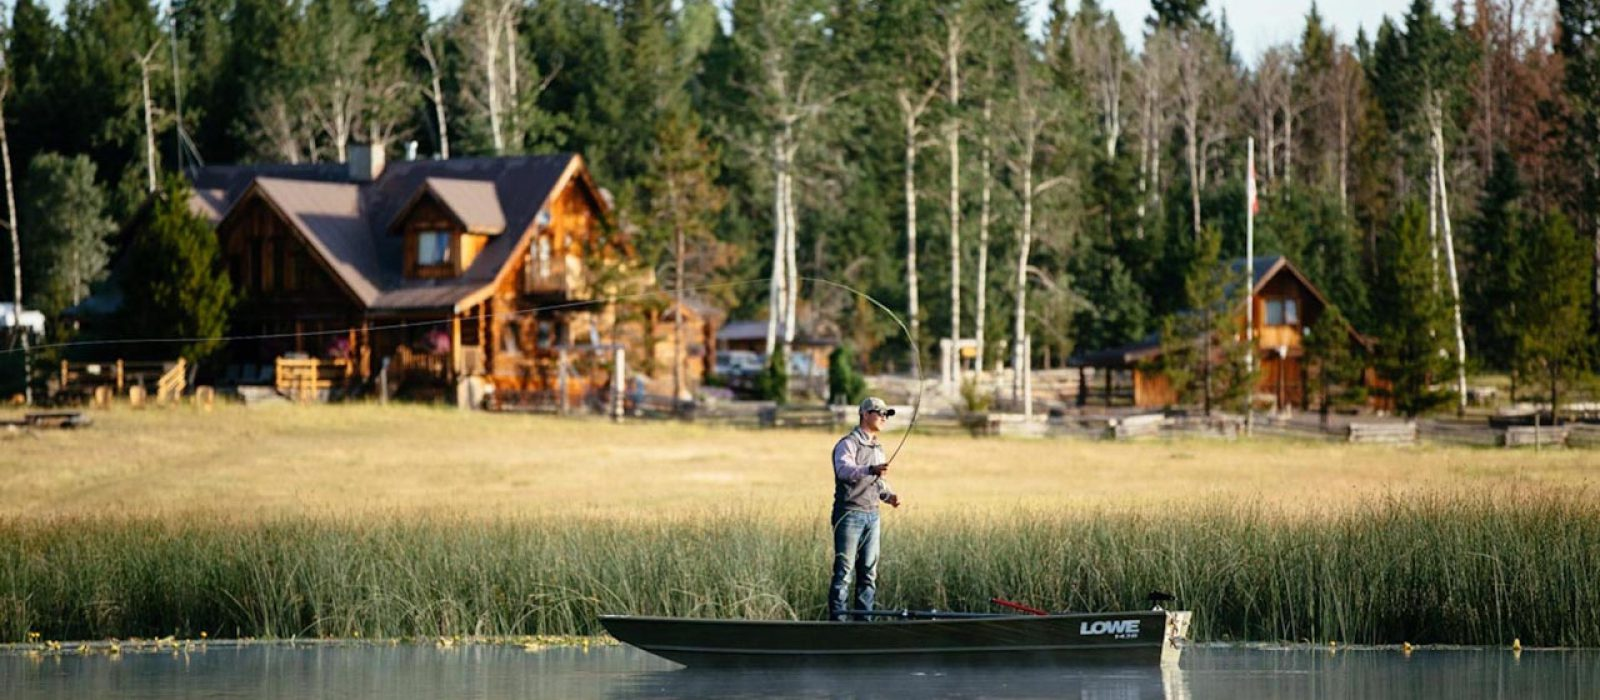 Man fishing in from a small boat in front of the Siwash Lake Wilderness Resort